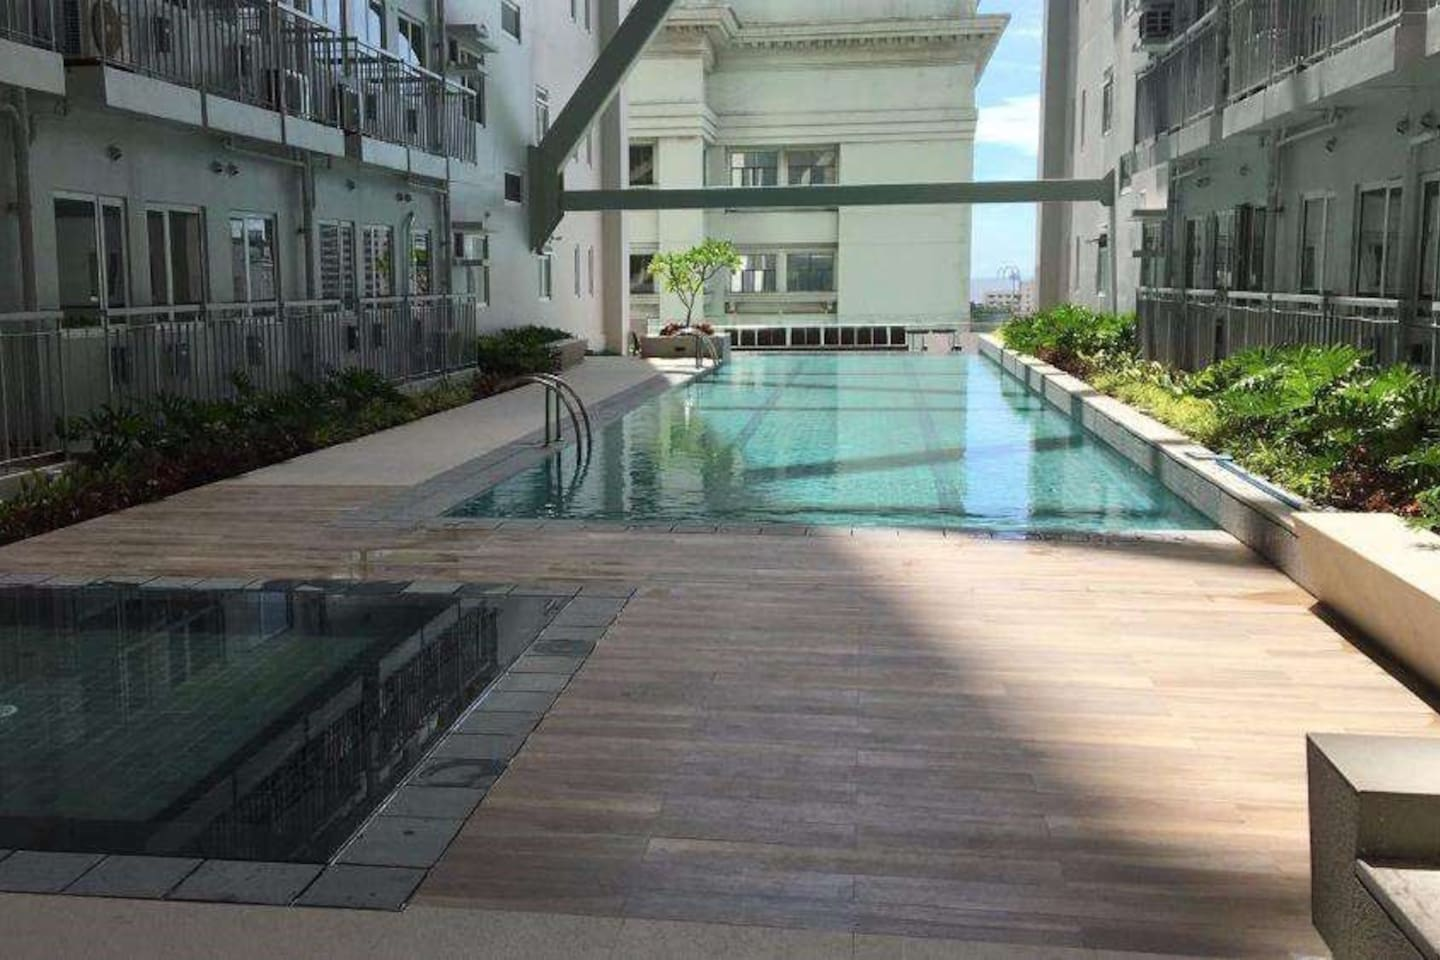 Pools and Sitting Area